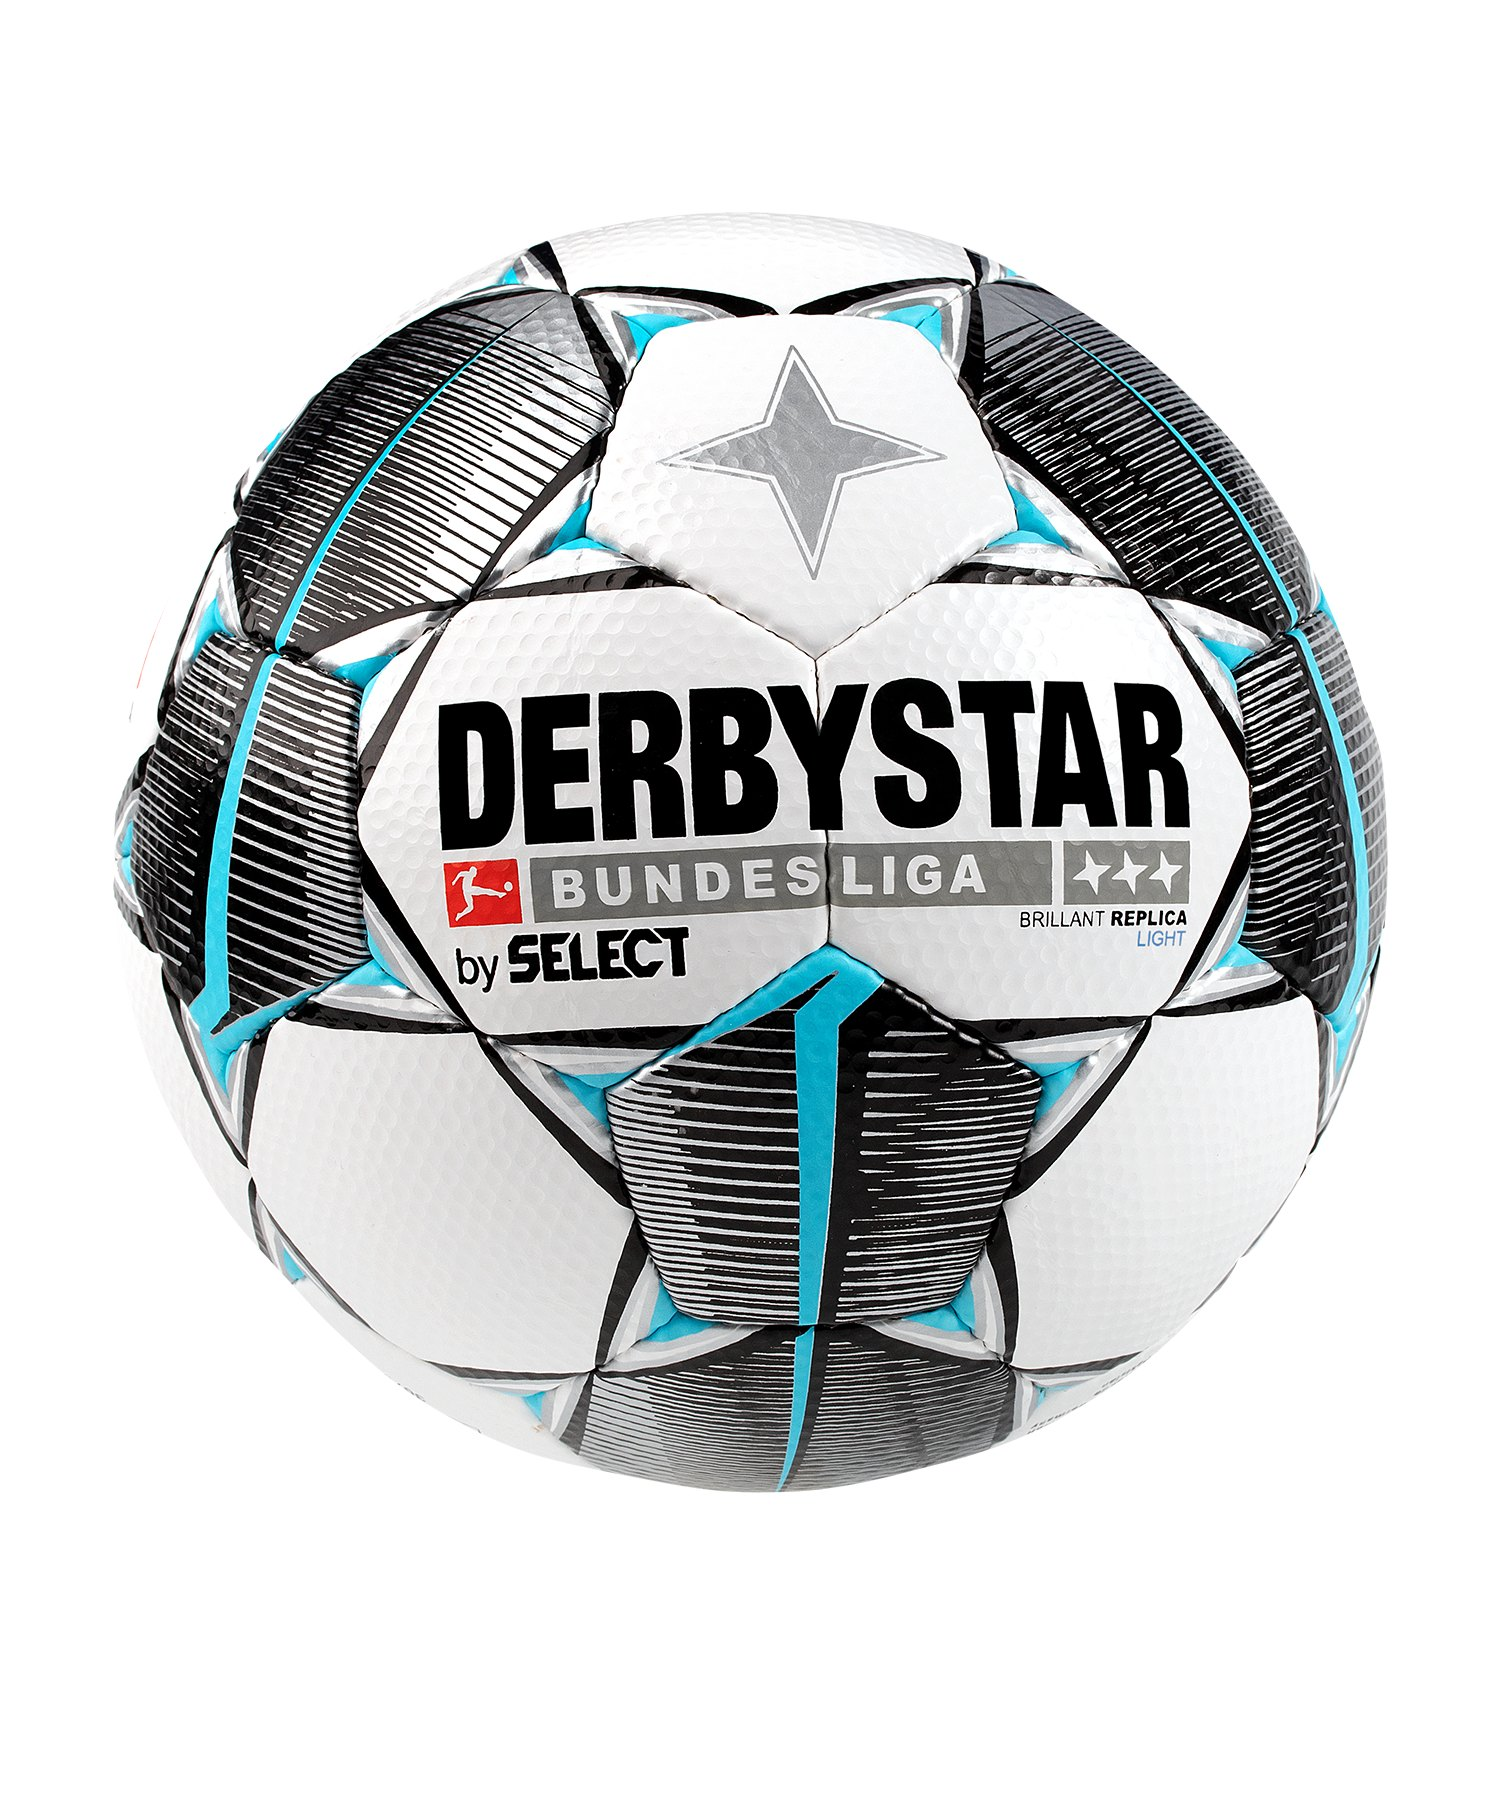 Derbystar Bundesliga Brillant Replica Light 350g Fussball Weiss F019 - weiss